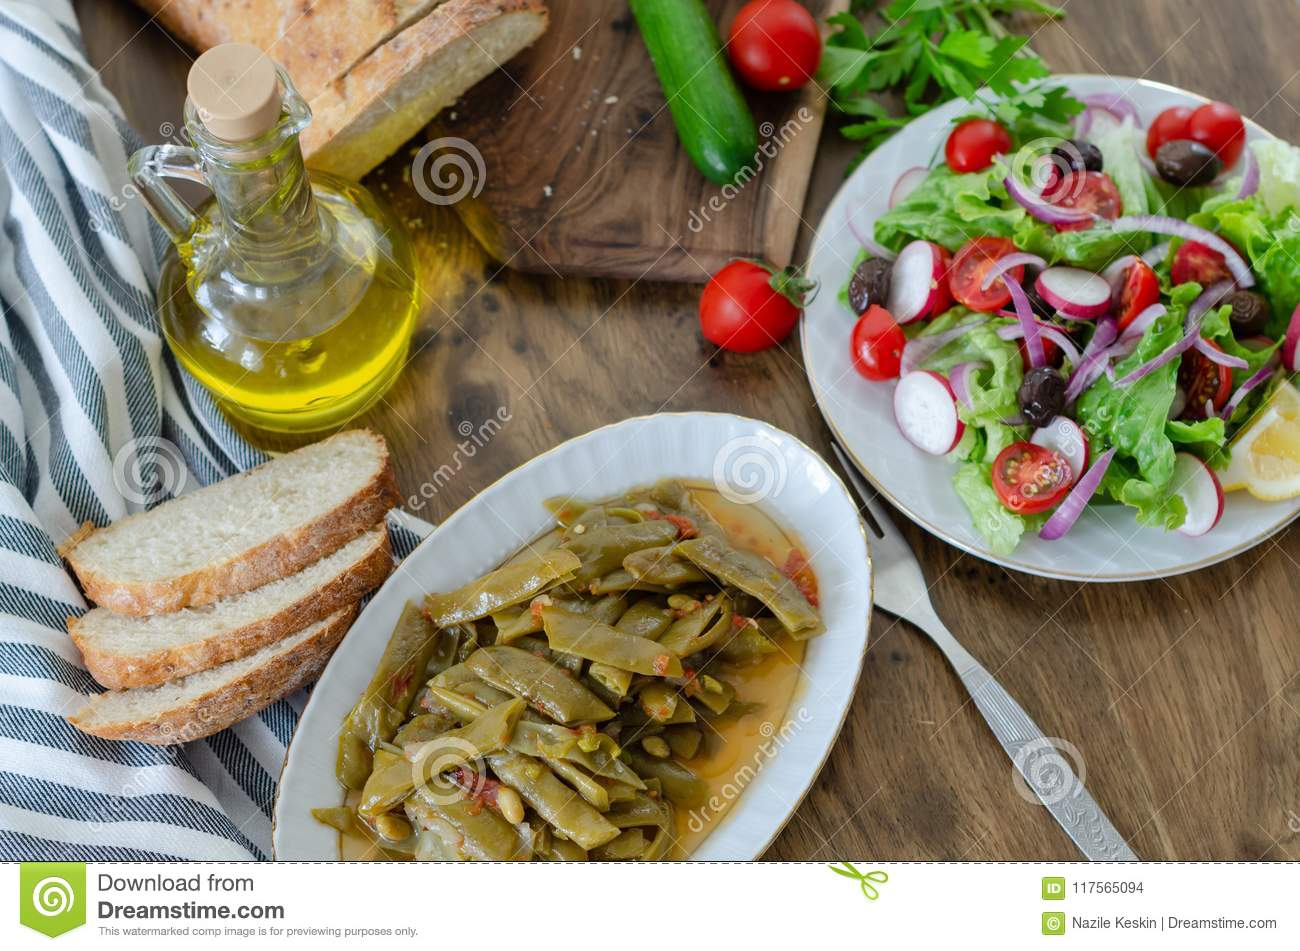 Healthy eating habits,Olive oil with bean meal and salad and